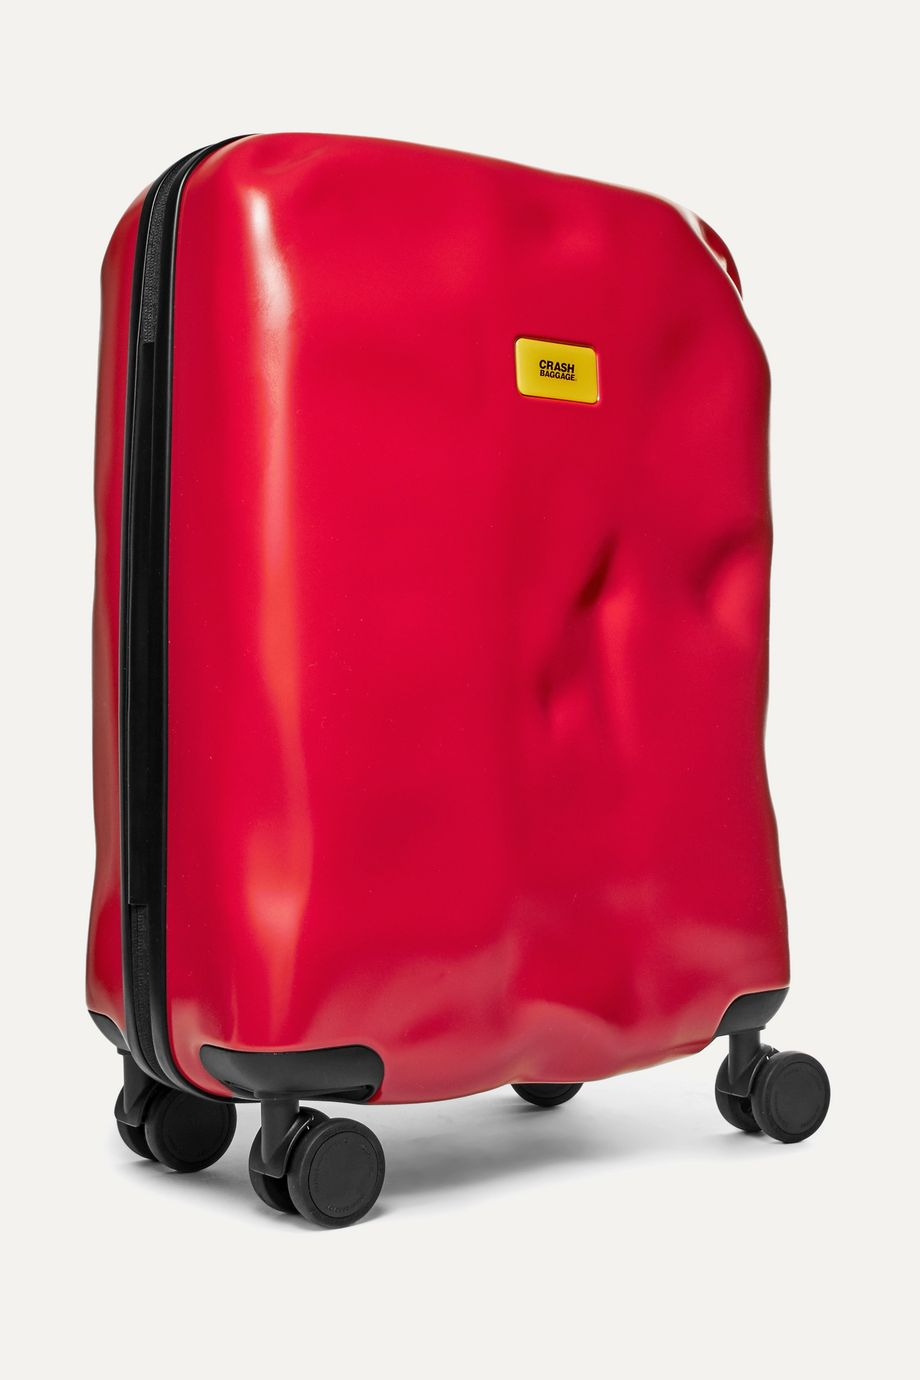 Crash Baggage Icon Cabin hardshell suitcase